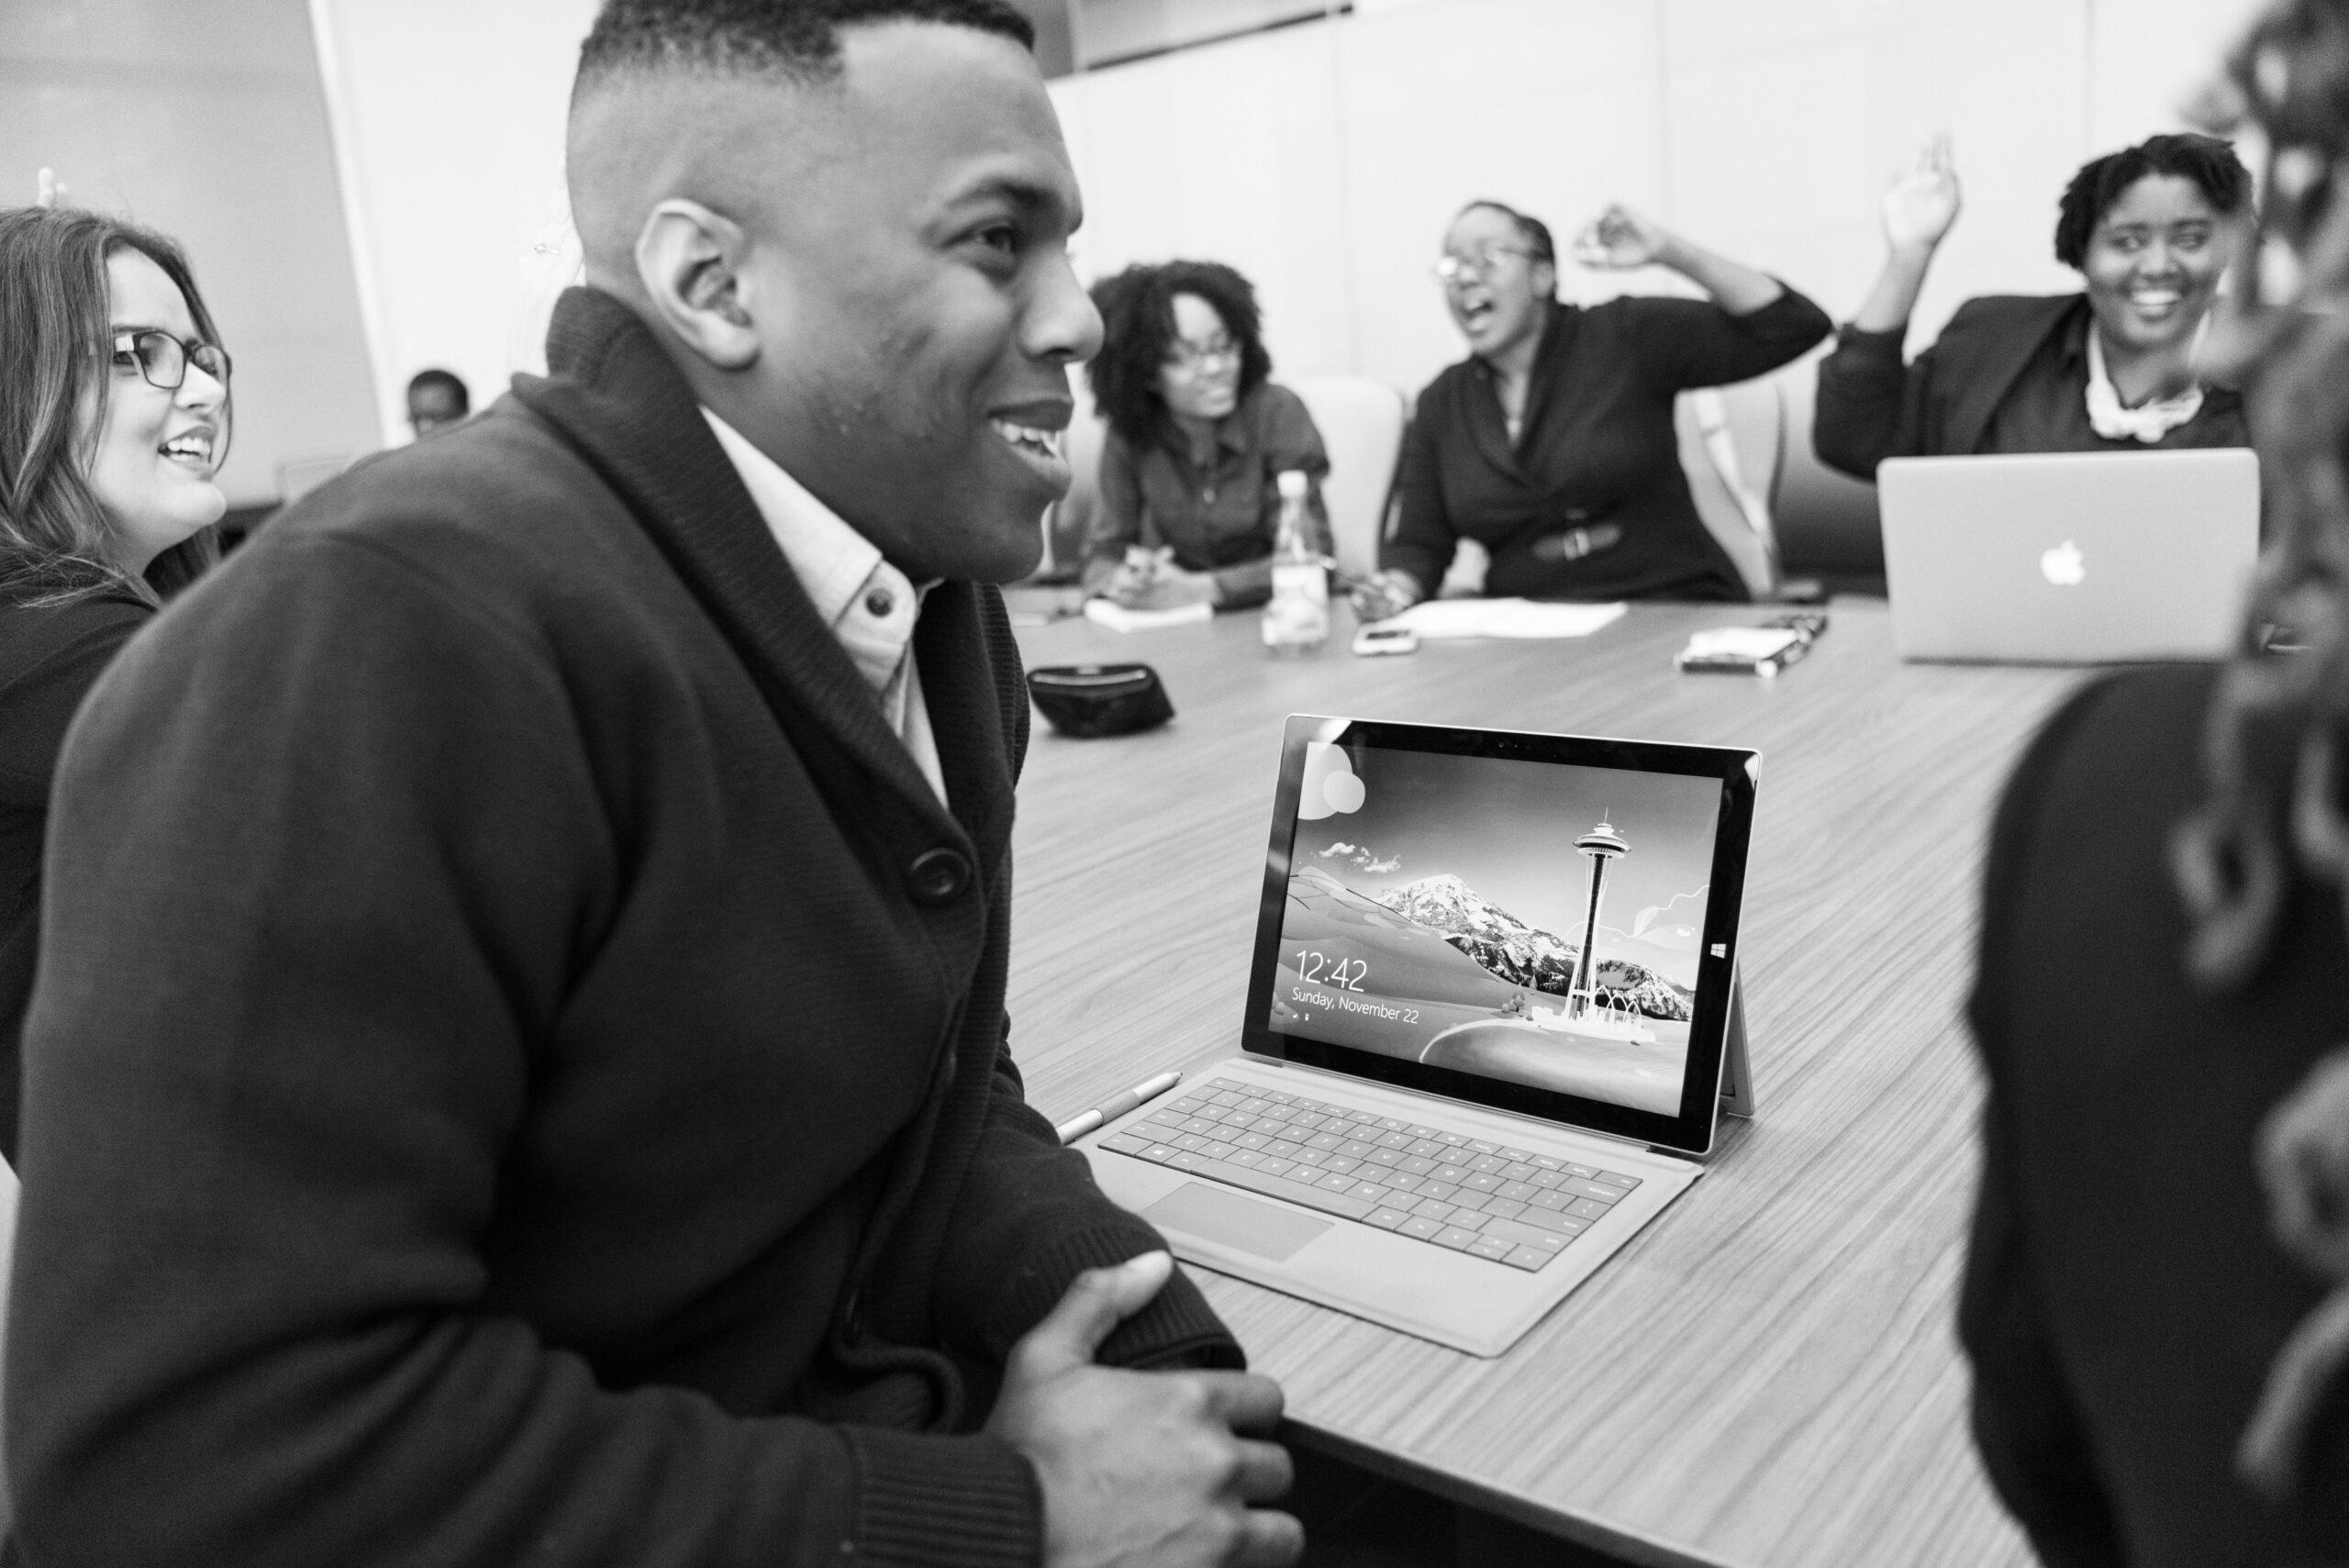 people laughing and cheering at a conference table